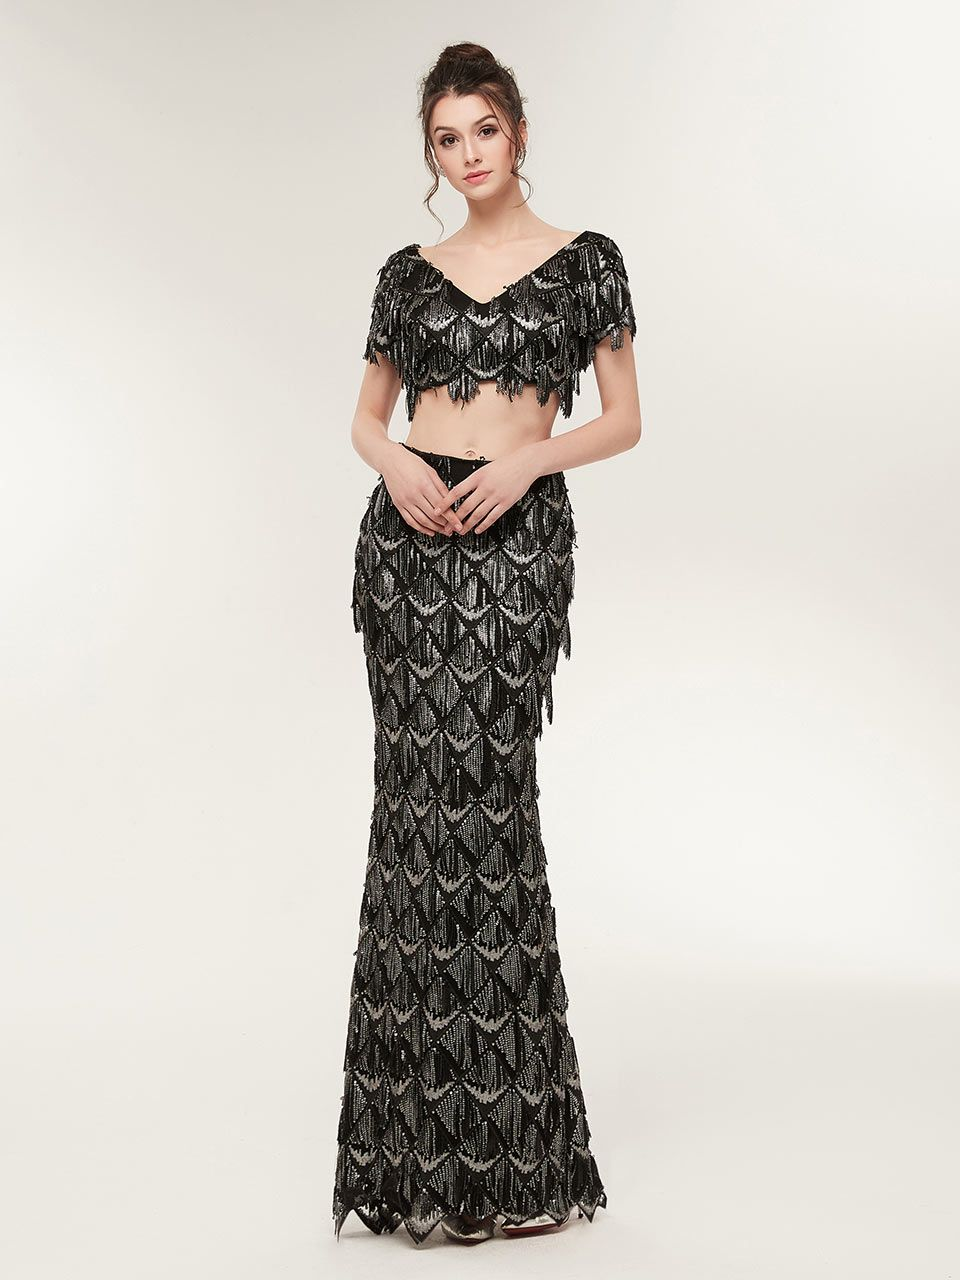 Mermaid black prom dressesblack sequin prom dressestwo piece black